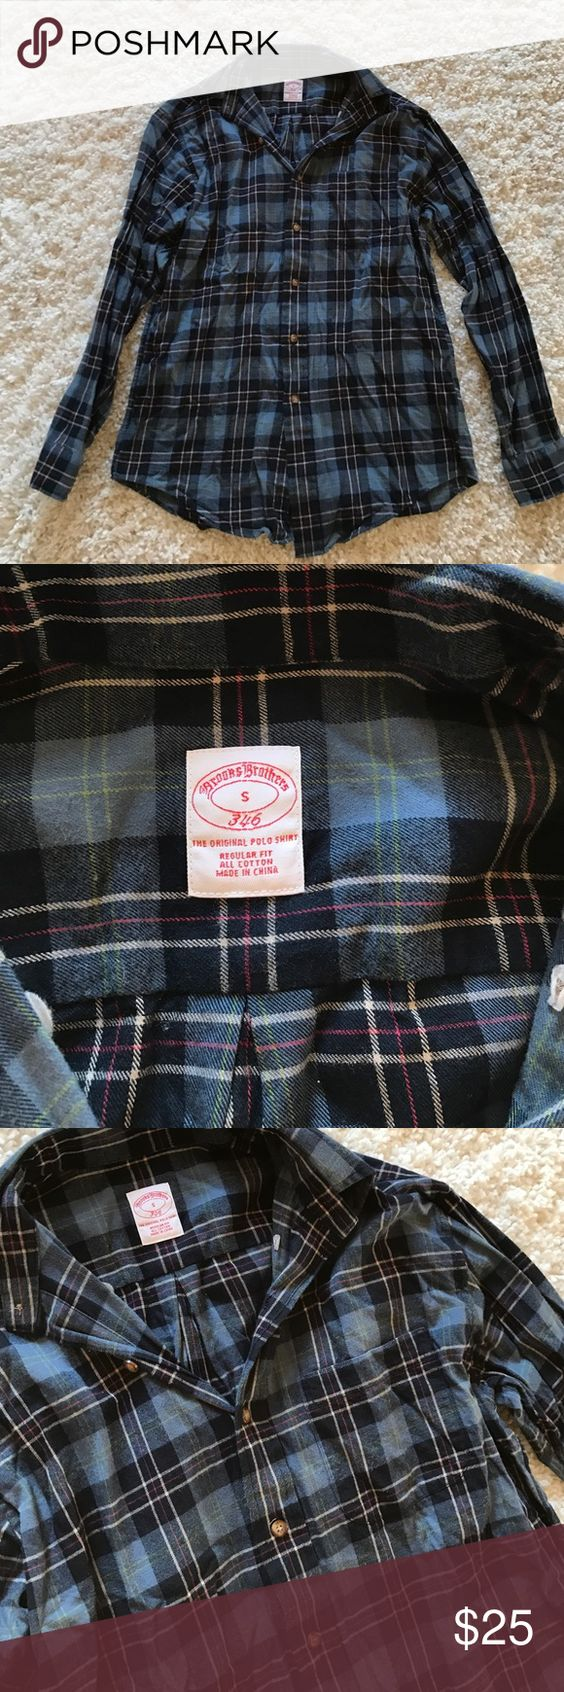 Brooks Brothers blue Plaid Button Down Great flannel shirt, only worn 1-2 times. No flaws. Material is soft and warm Brooks Brothers Shirts Casual Button Down Shirts